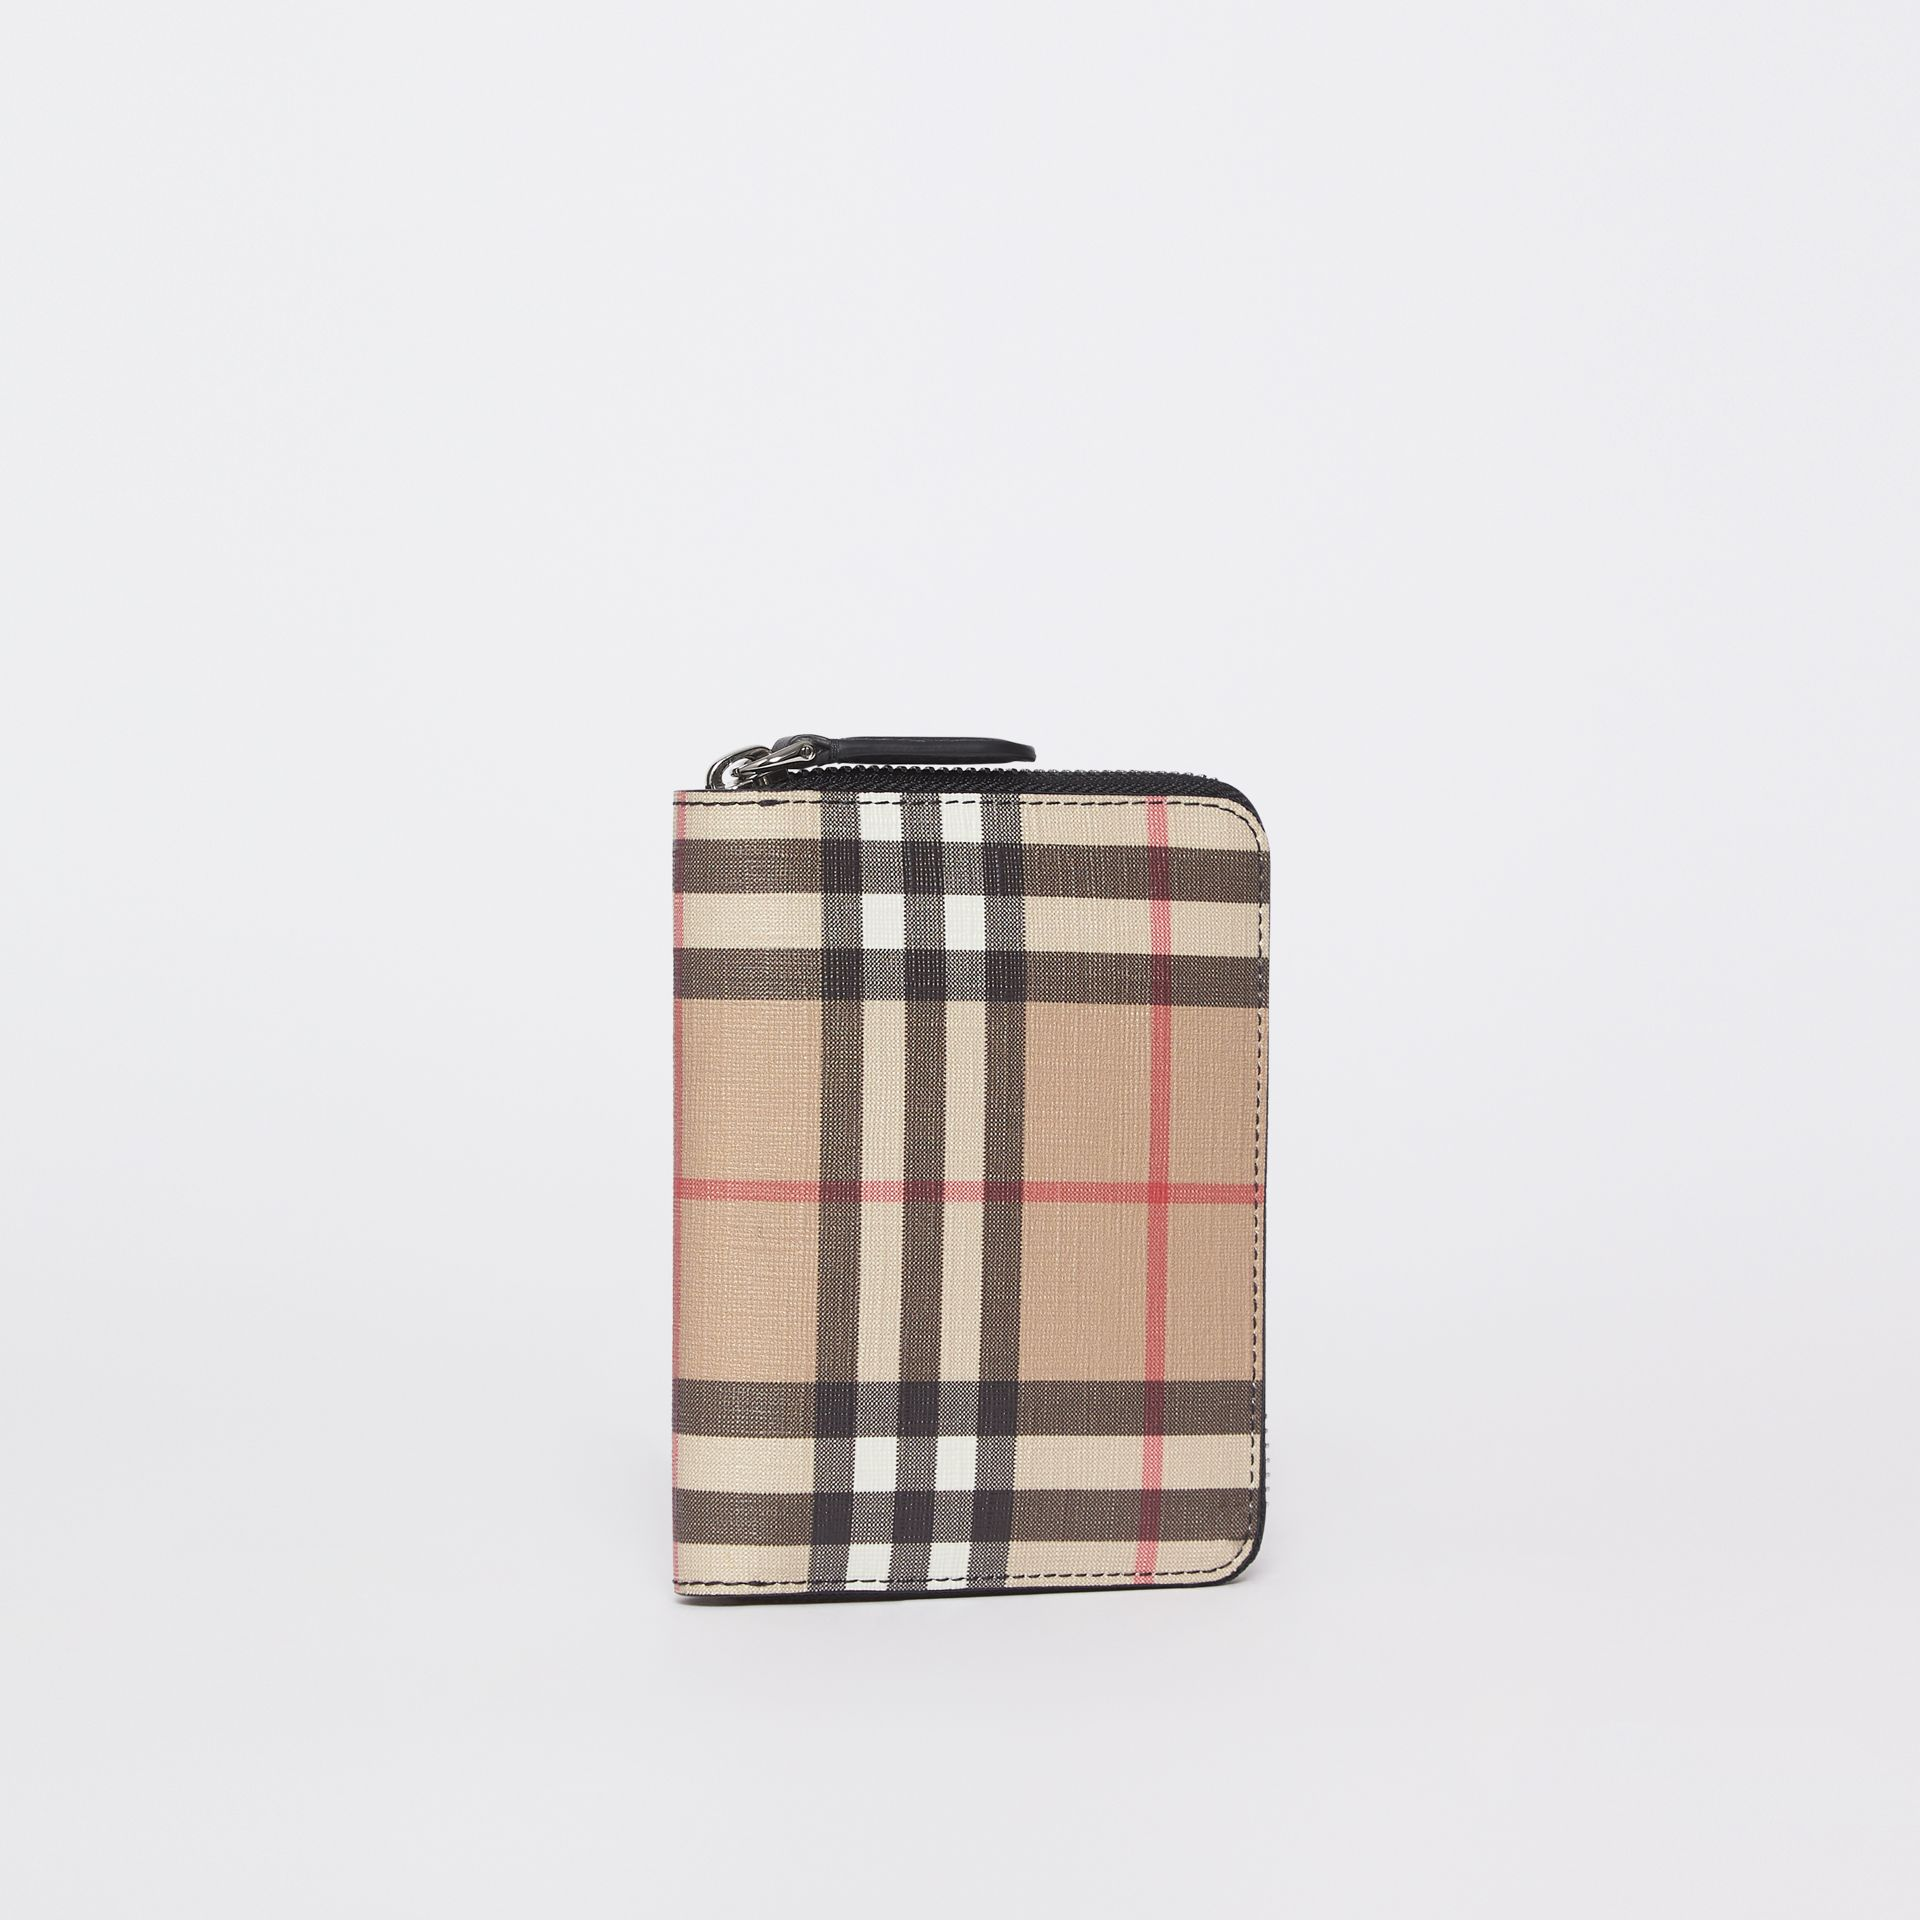 Vintage Check E-canvas Ziparound Wallet in Black - Women | Burberry - gallery image 3